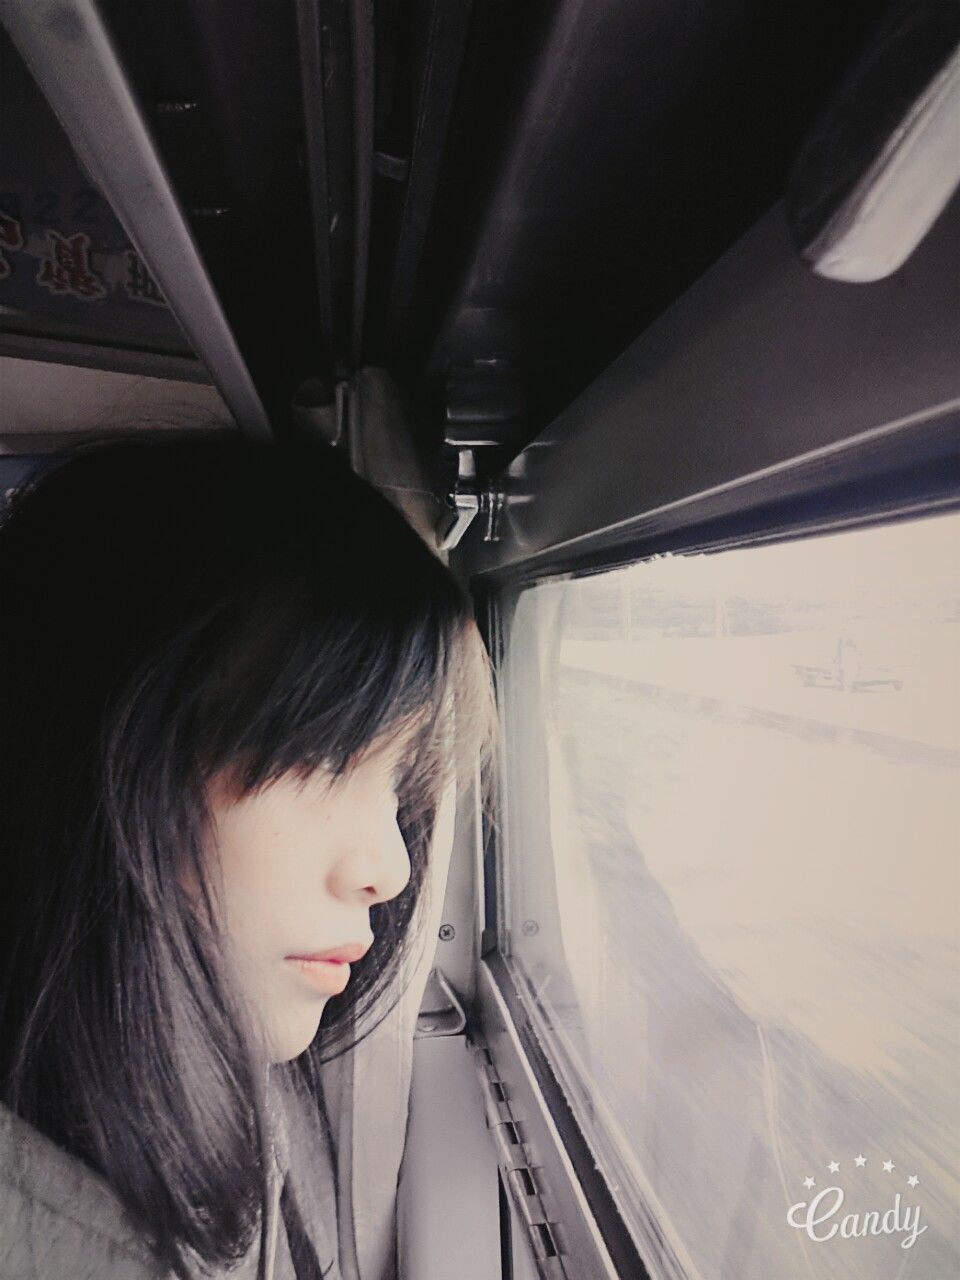 vehicle interior, transportation, mode of transport, travel, real people, journey, one person, vehicle seat, land vehicle, black hair, car interior, public transportation, lifestyles, young adult, window, train - vehicle, young women, air vehicle, day, airplane, sitting, indoors, close-up